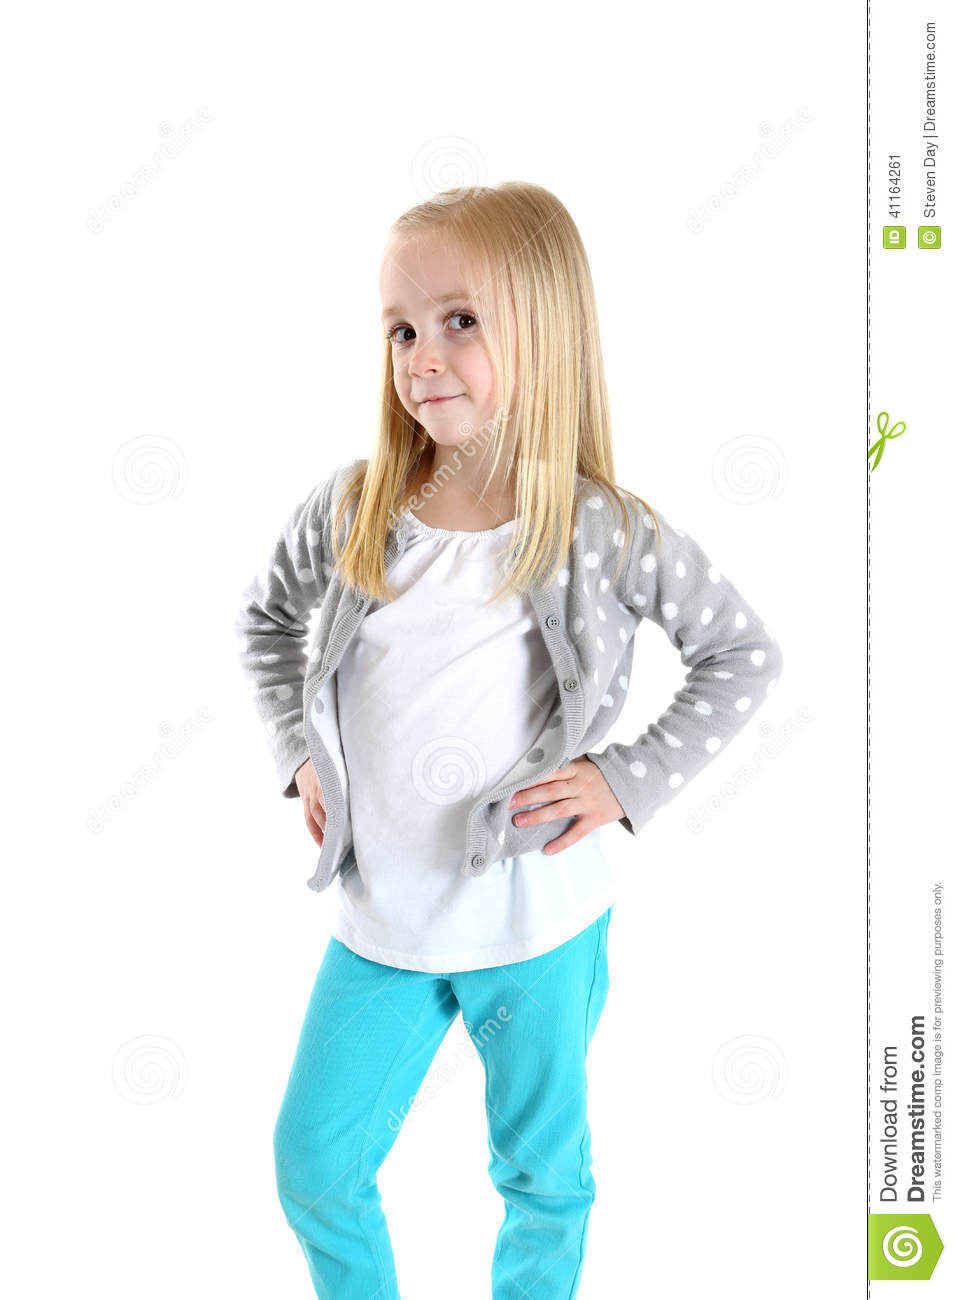 Adorable Young Girl Standing With Her Hands On Her Hips